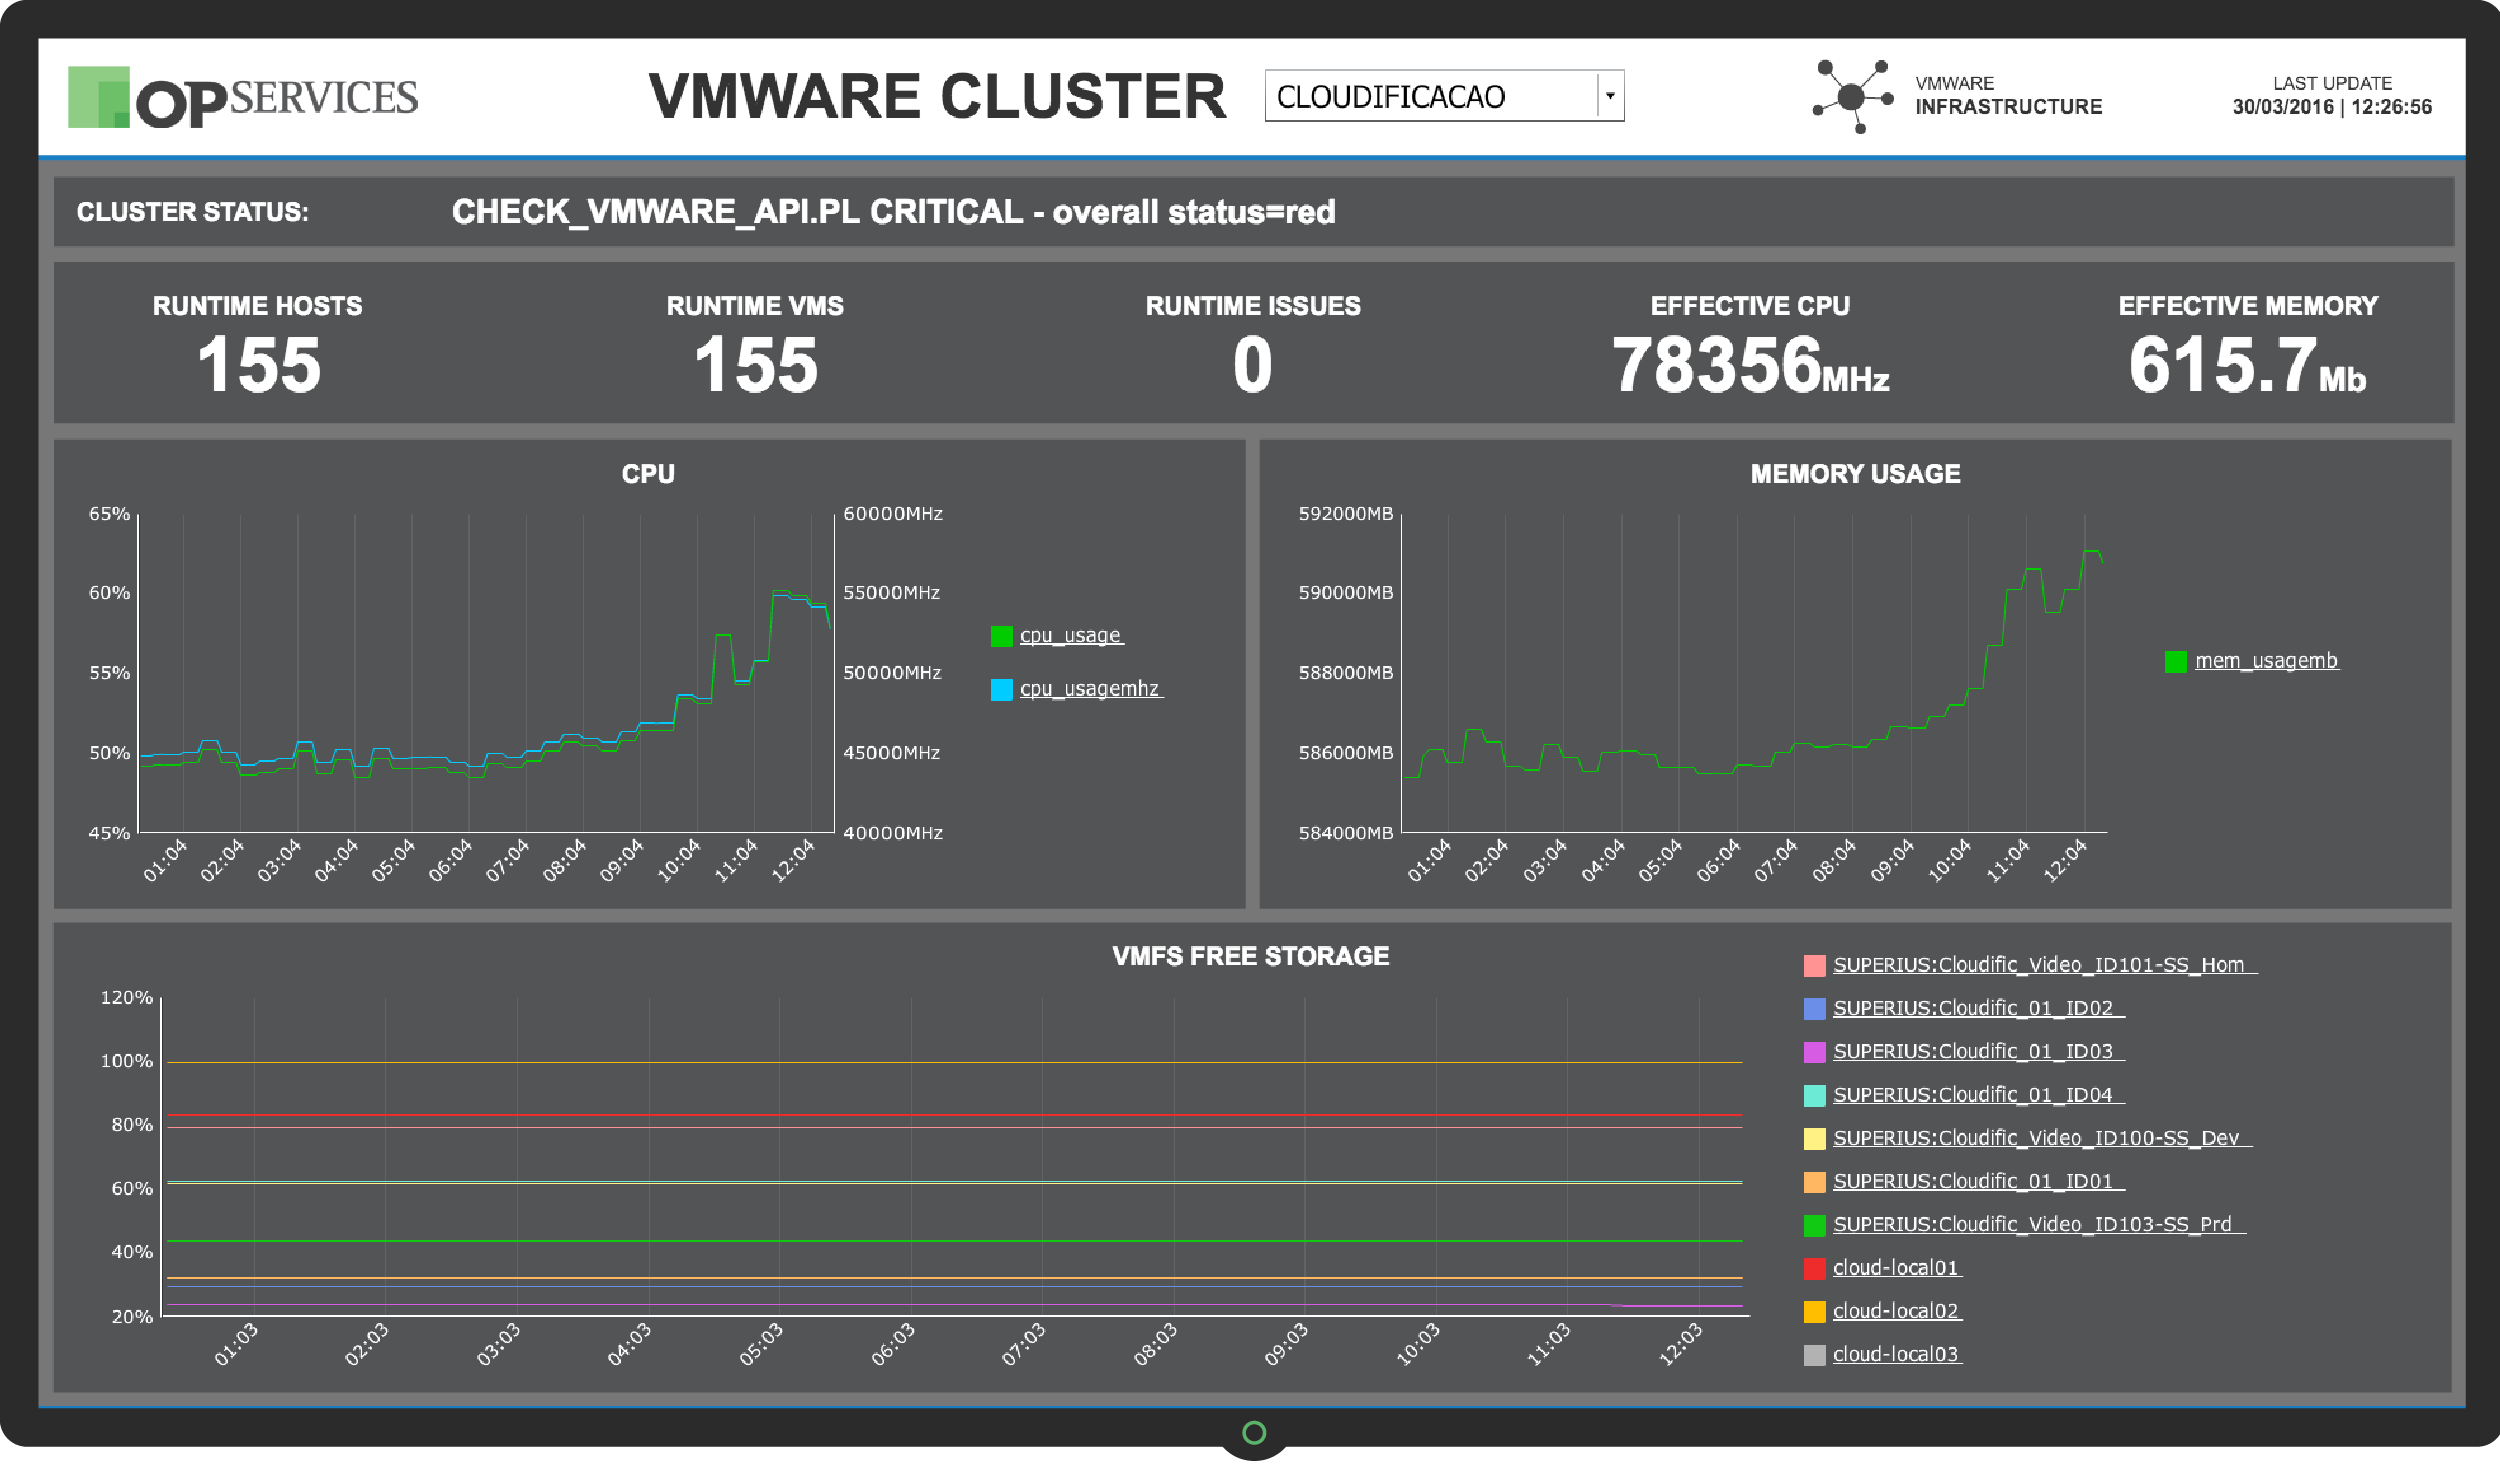 Dashboard VMWARE CLUSTER